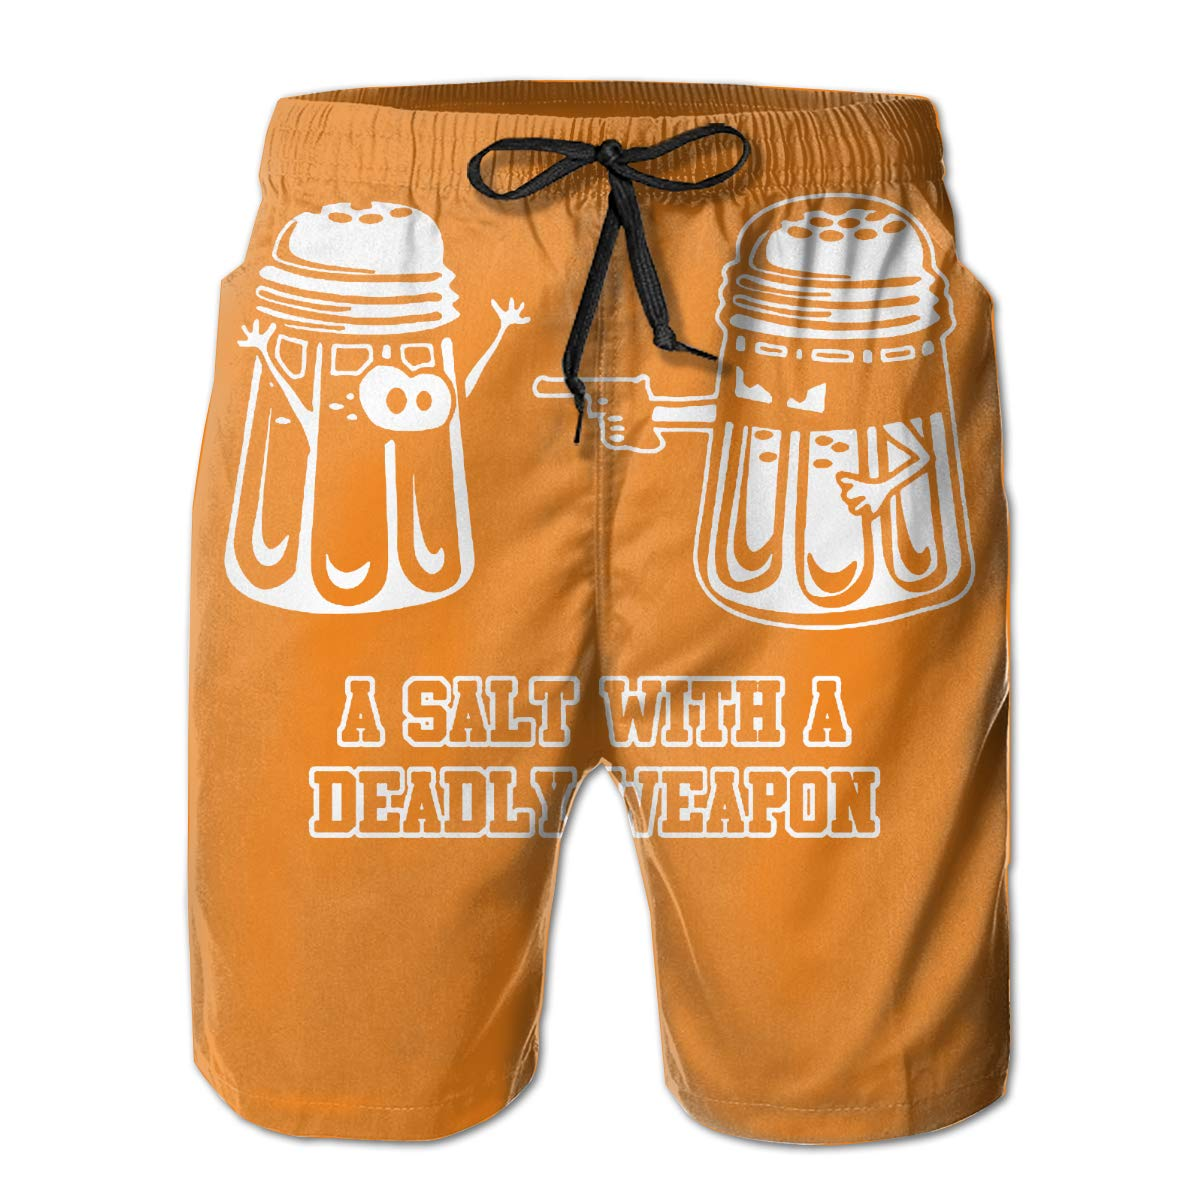 WWT A Salt with A Deadly Weapon Mens Printed Beach Shorts with Mesh Lining//Side Pockets